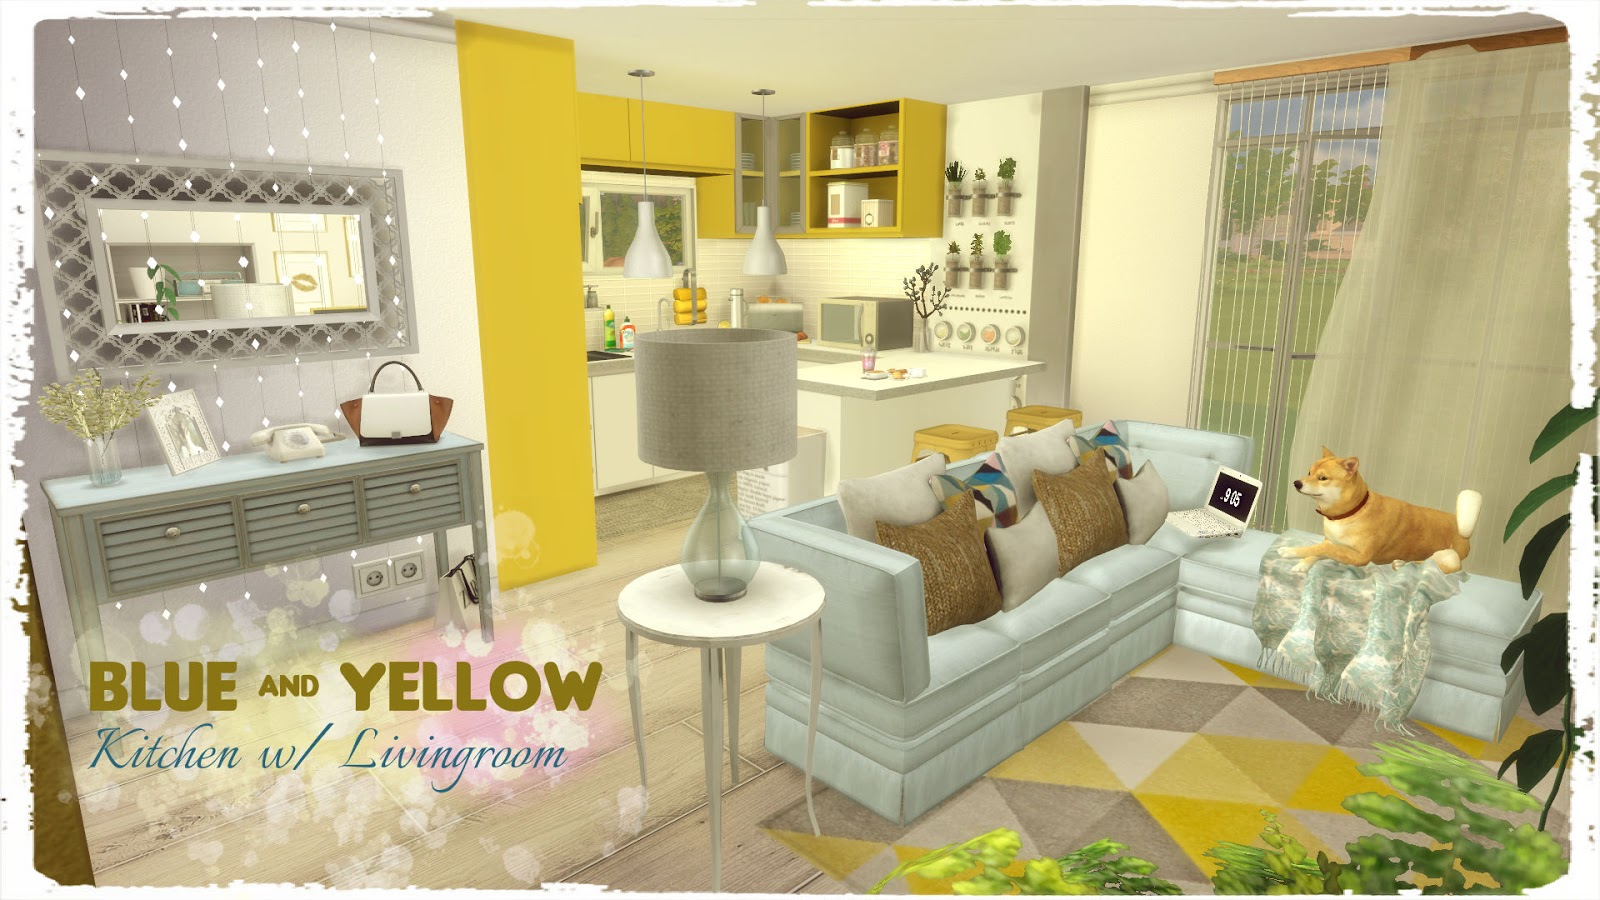 Sims 4 blue yellow kitchen with livingroom dinha for 3 star living room chair sims